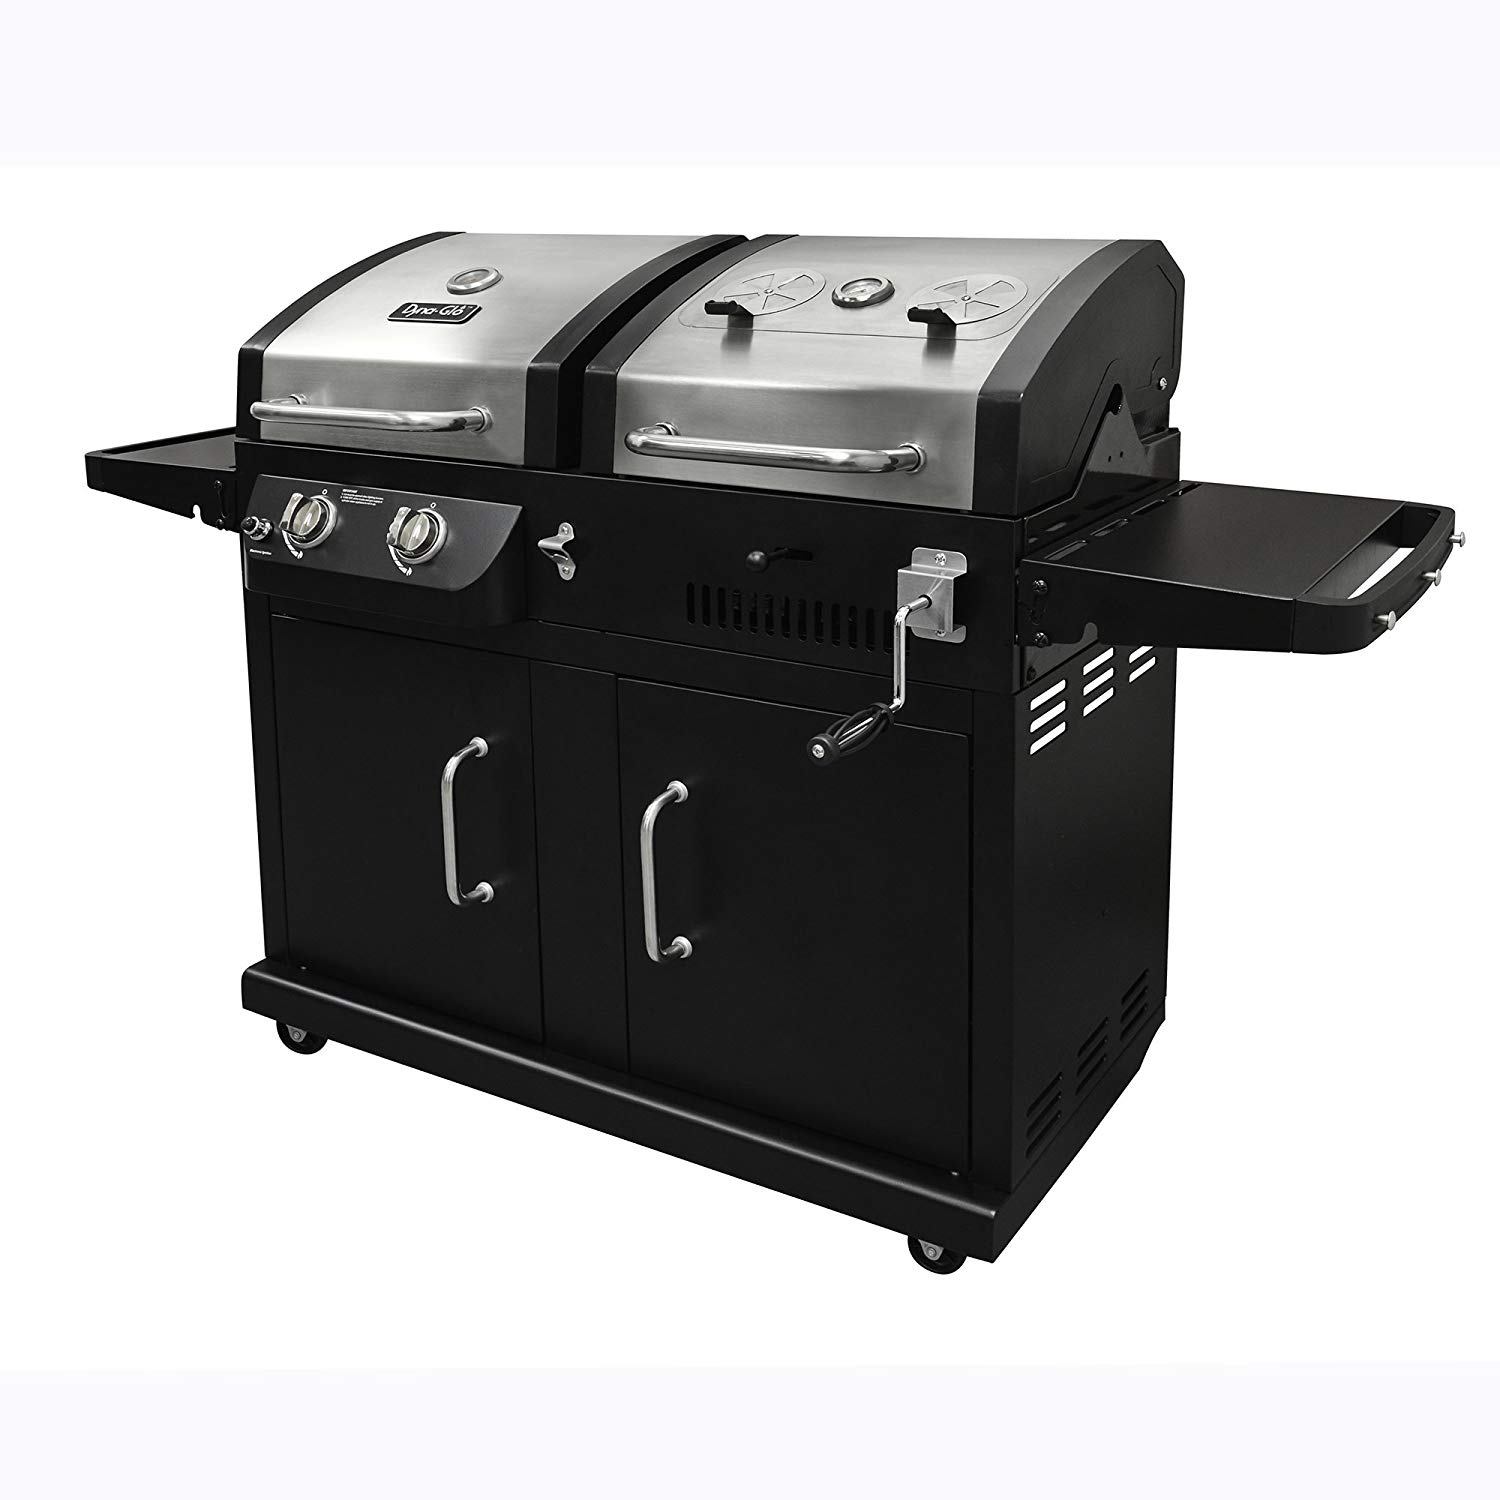 Dyna-Glo DGB730SNB-D Dual Fuel Grill Review